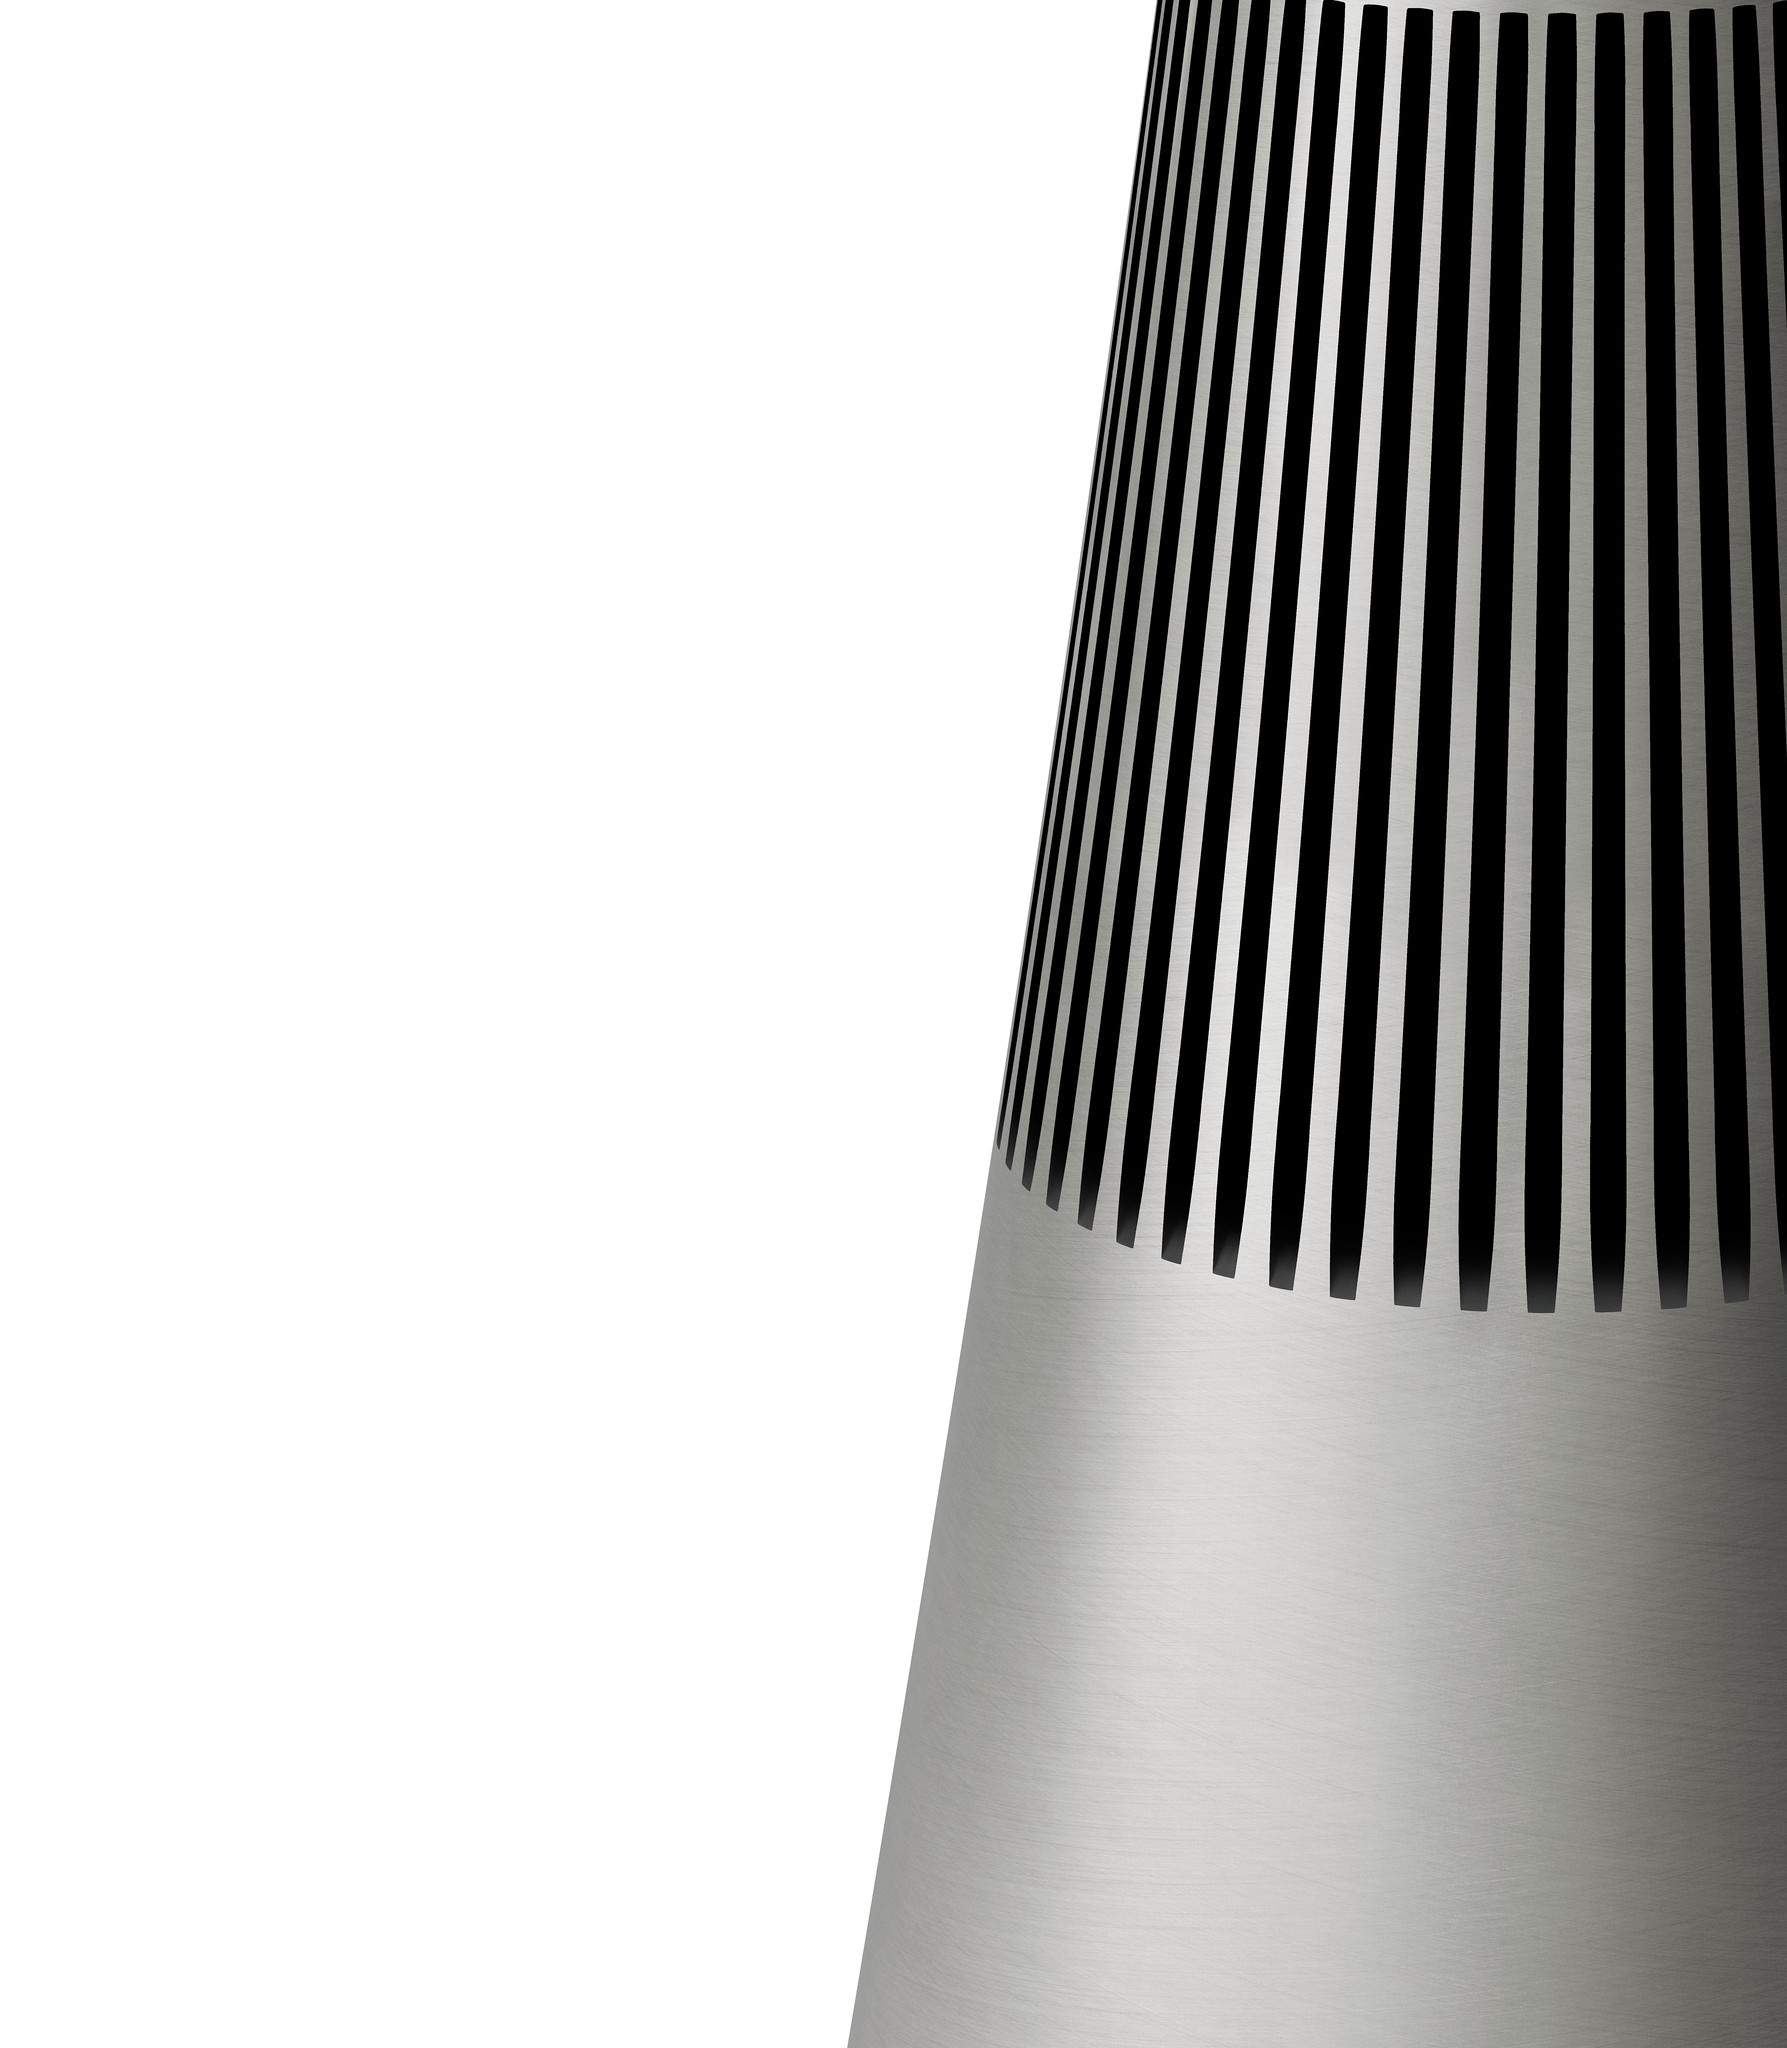 BeoSound 2 2nd generation Google Voice-5